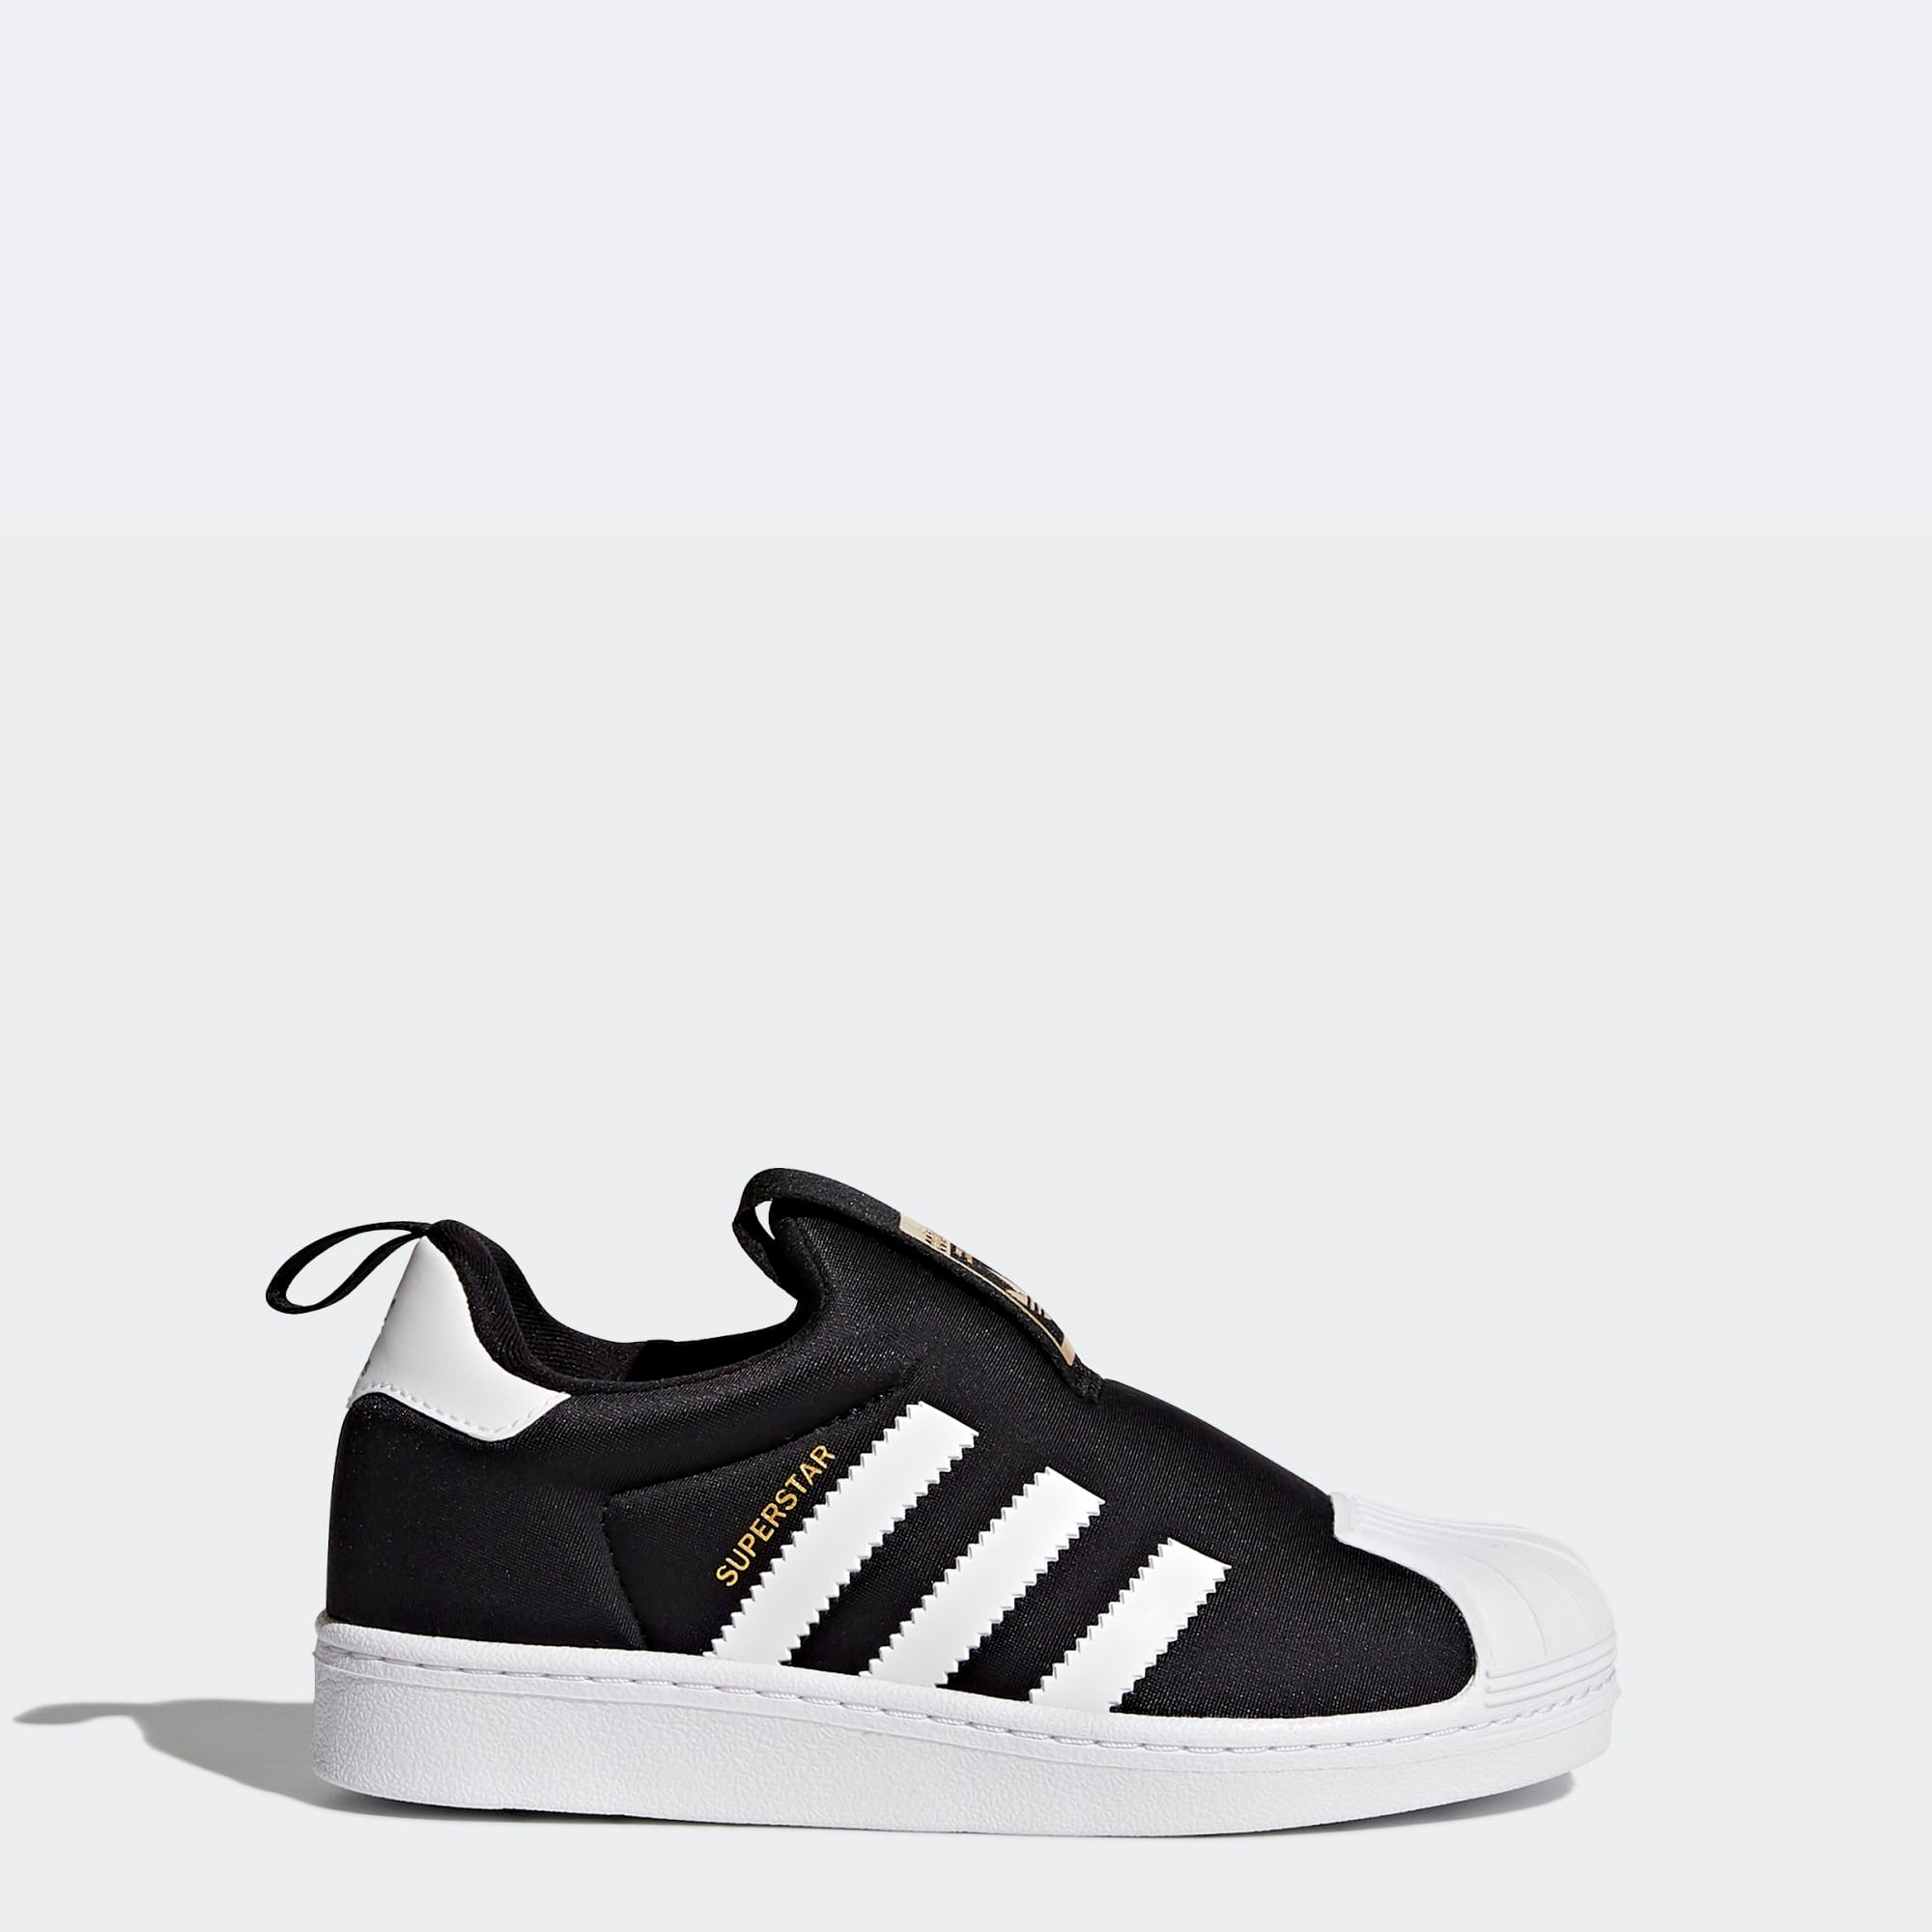 timeless design 3553c 1167d adidas Superstar 360 Sneakers Black S32130 | Chicago City Sports